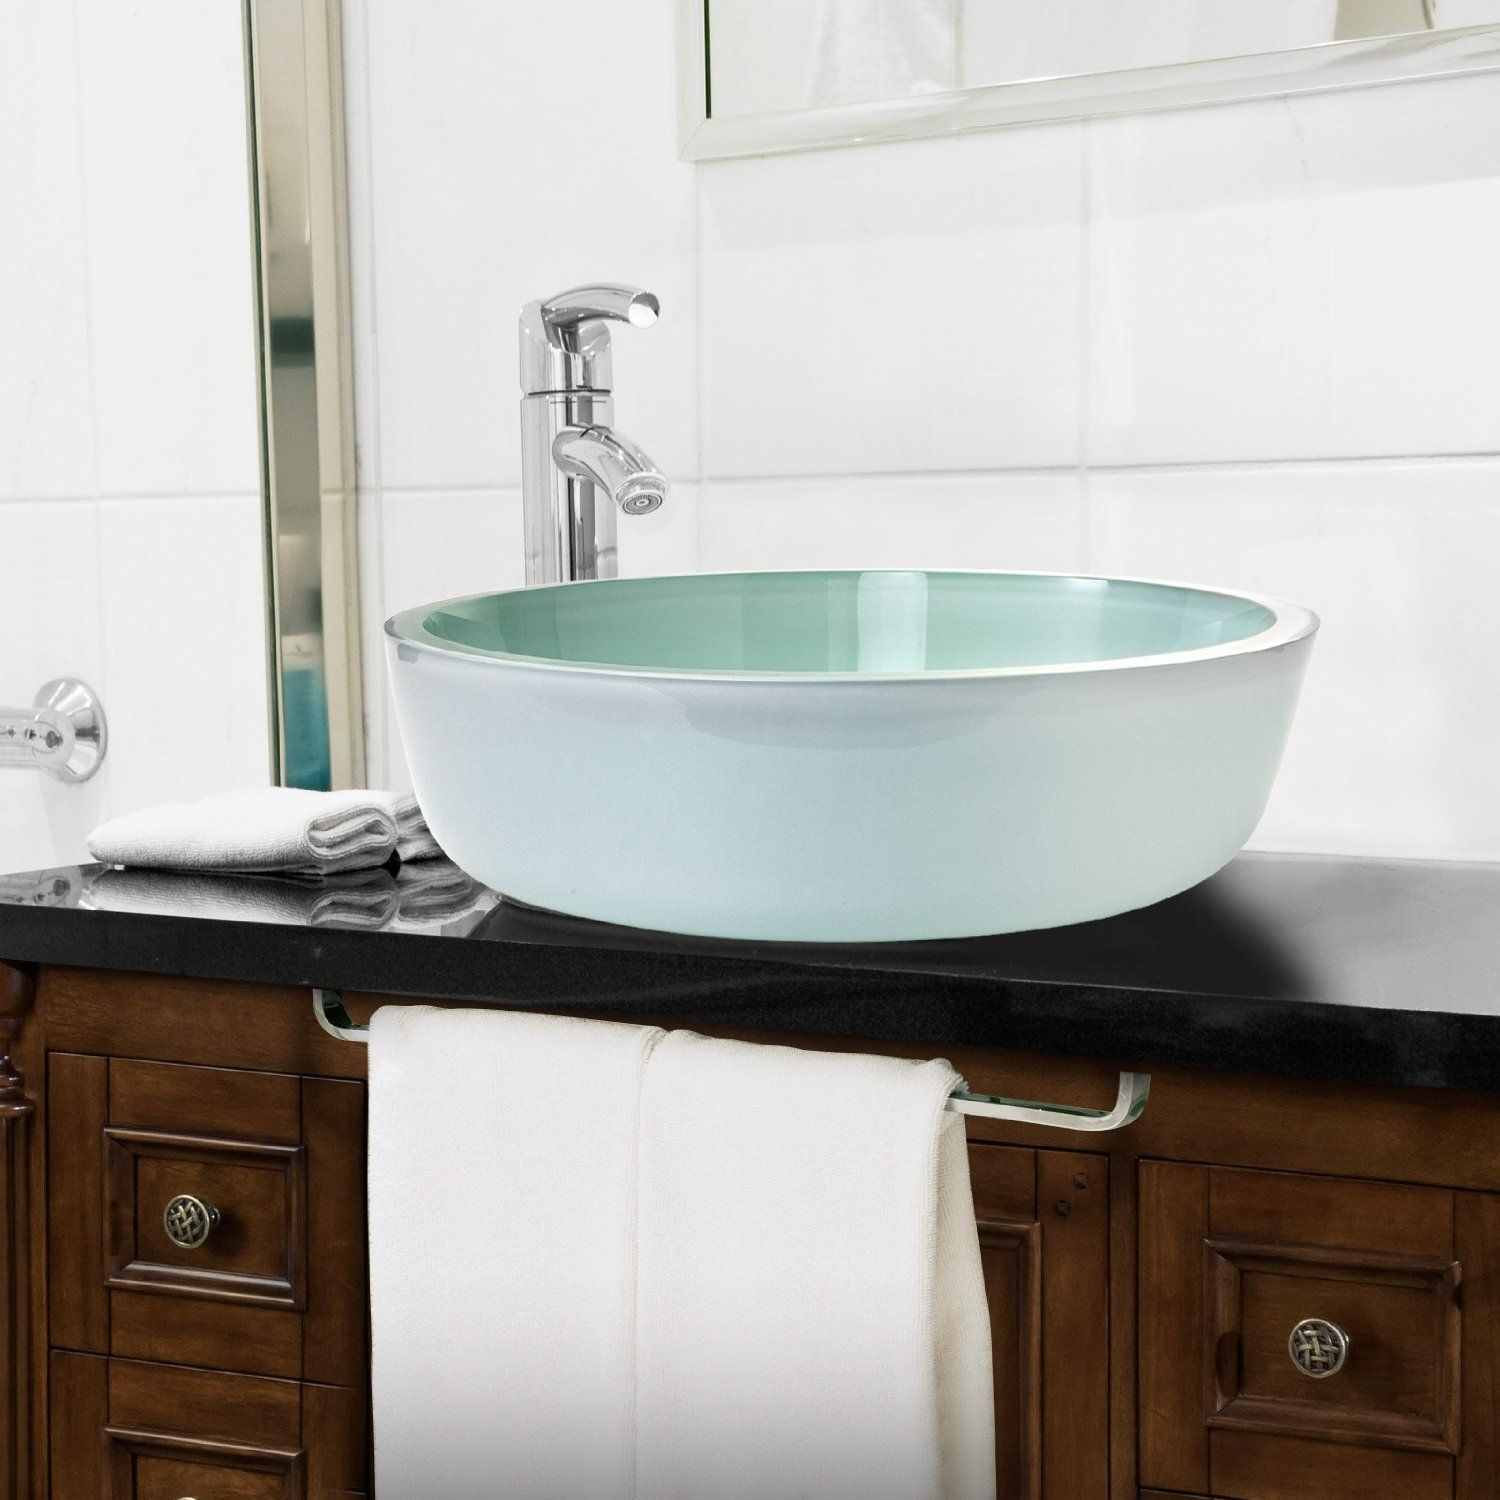 MISANO Tempered Glass Vessel Bathroom Sink Round Vanity Bowl ...